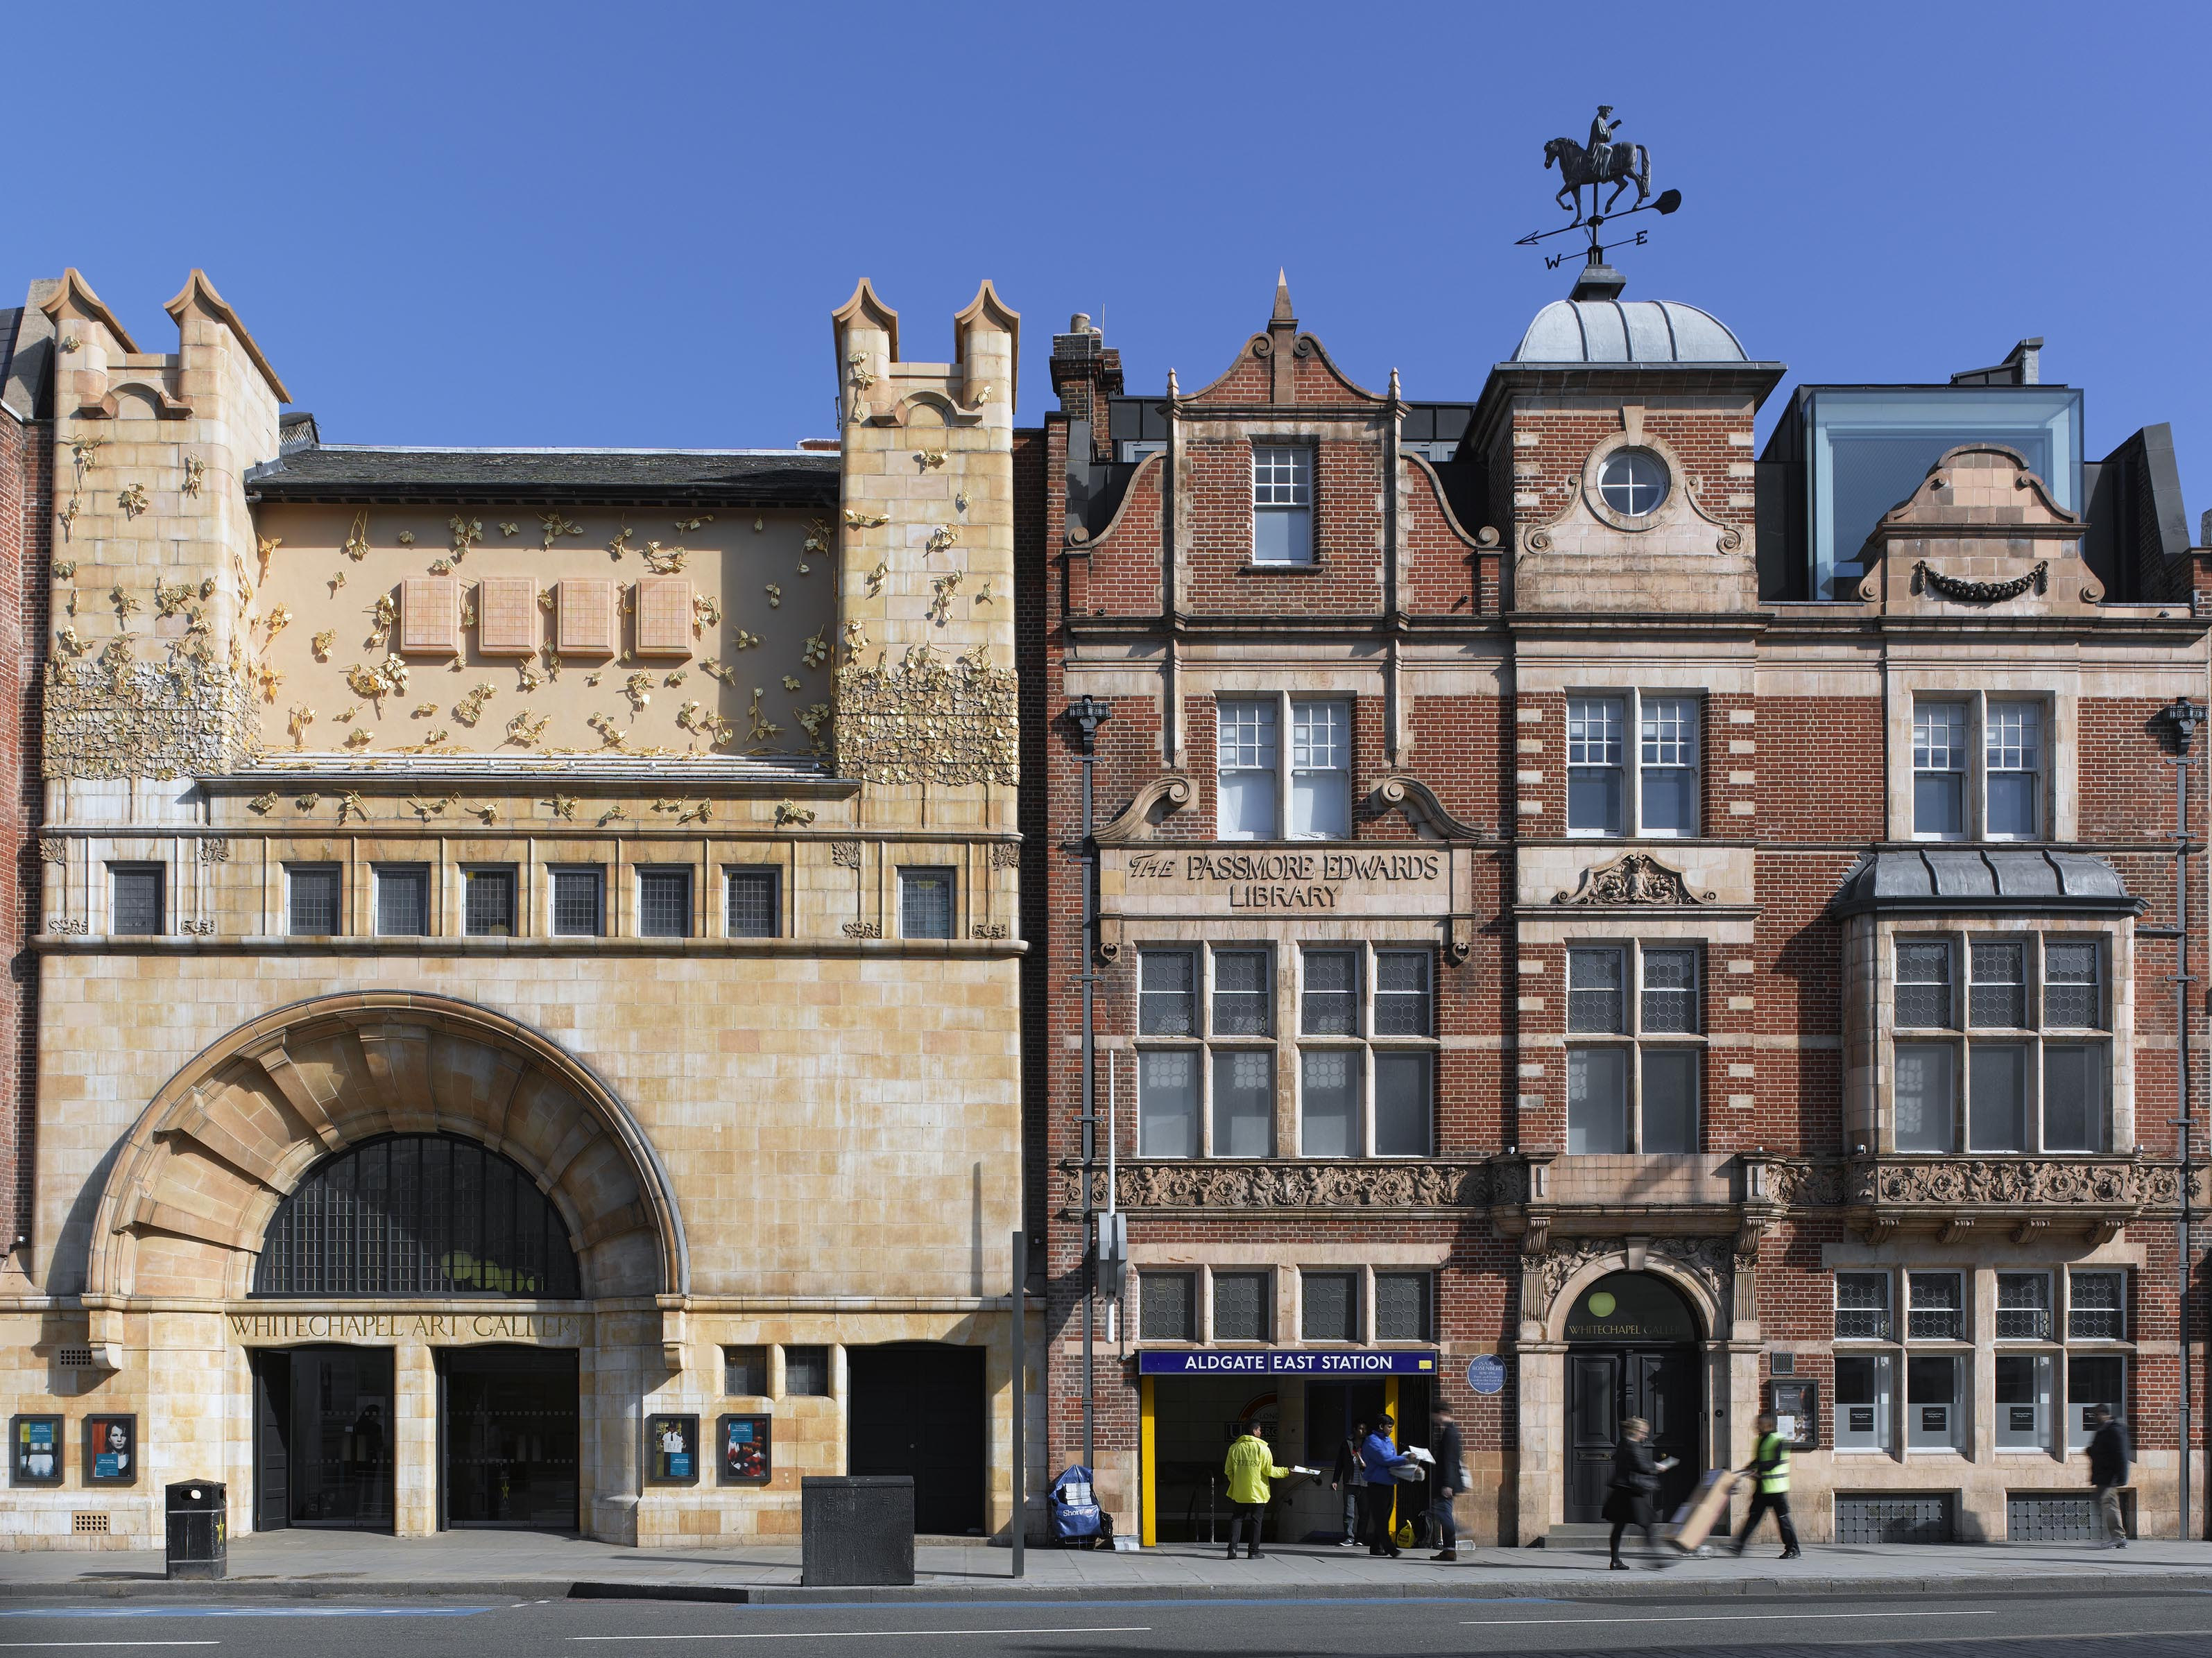 Whitechapel Gallery facade, with the Tree of Life by Rachel Whiteread.